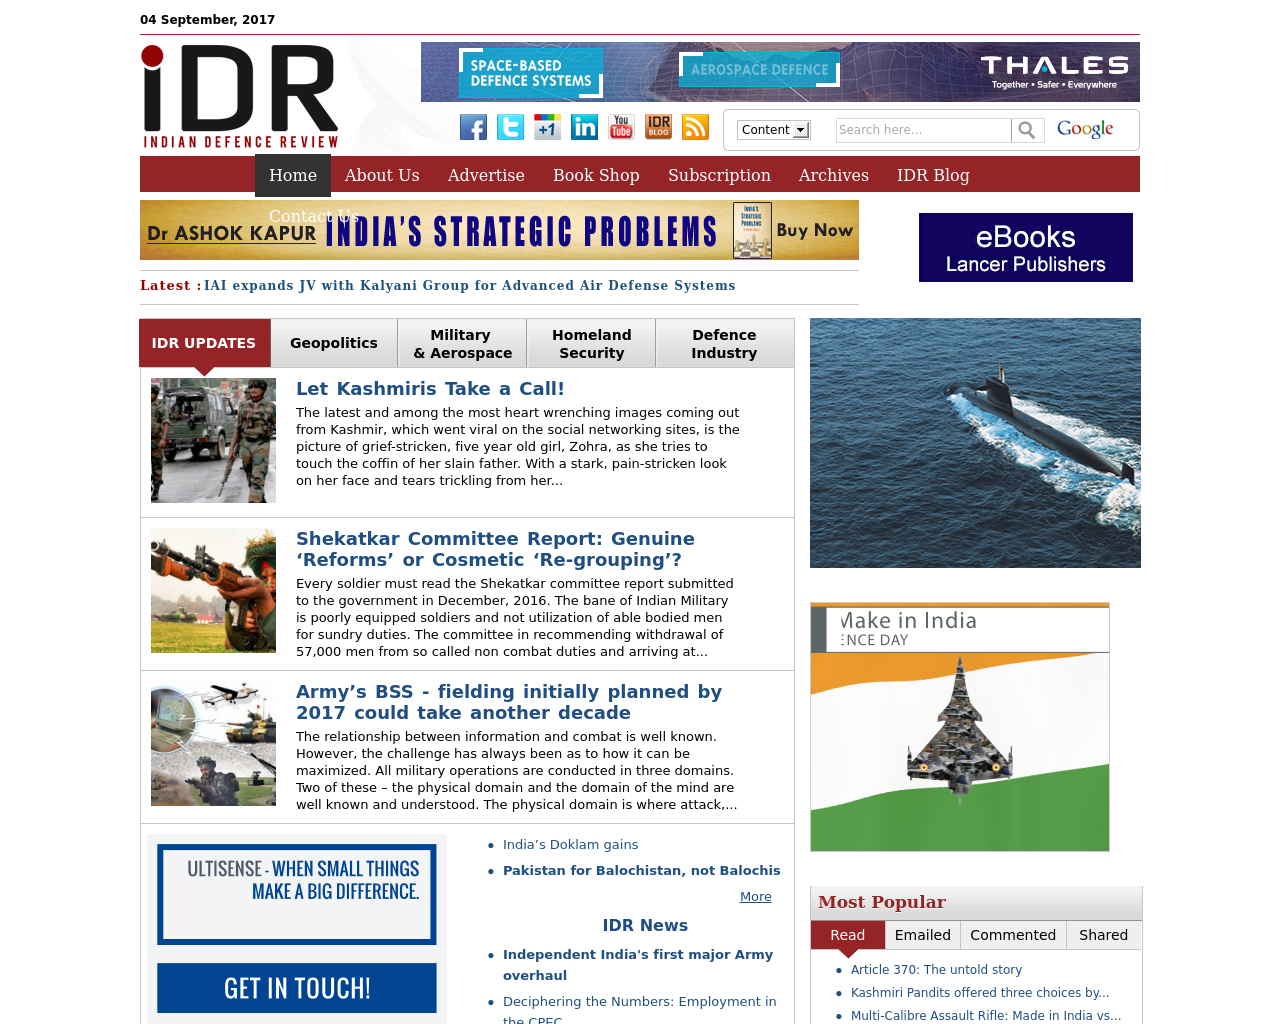 Indian-Defence-Review-Advertising-Reviews-Pricing